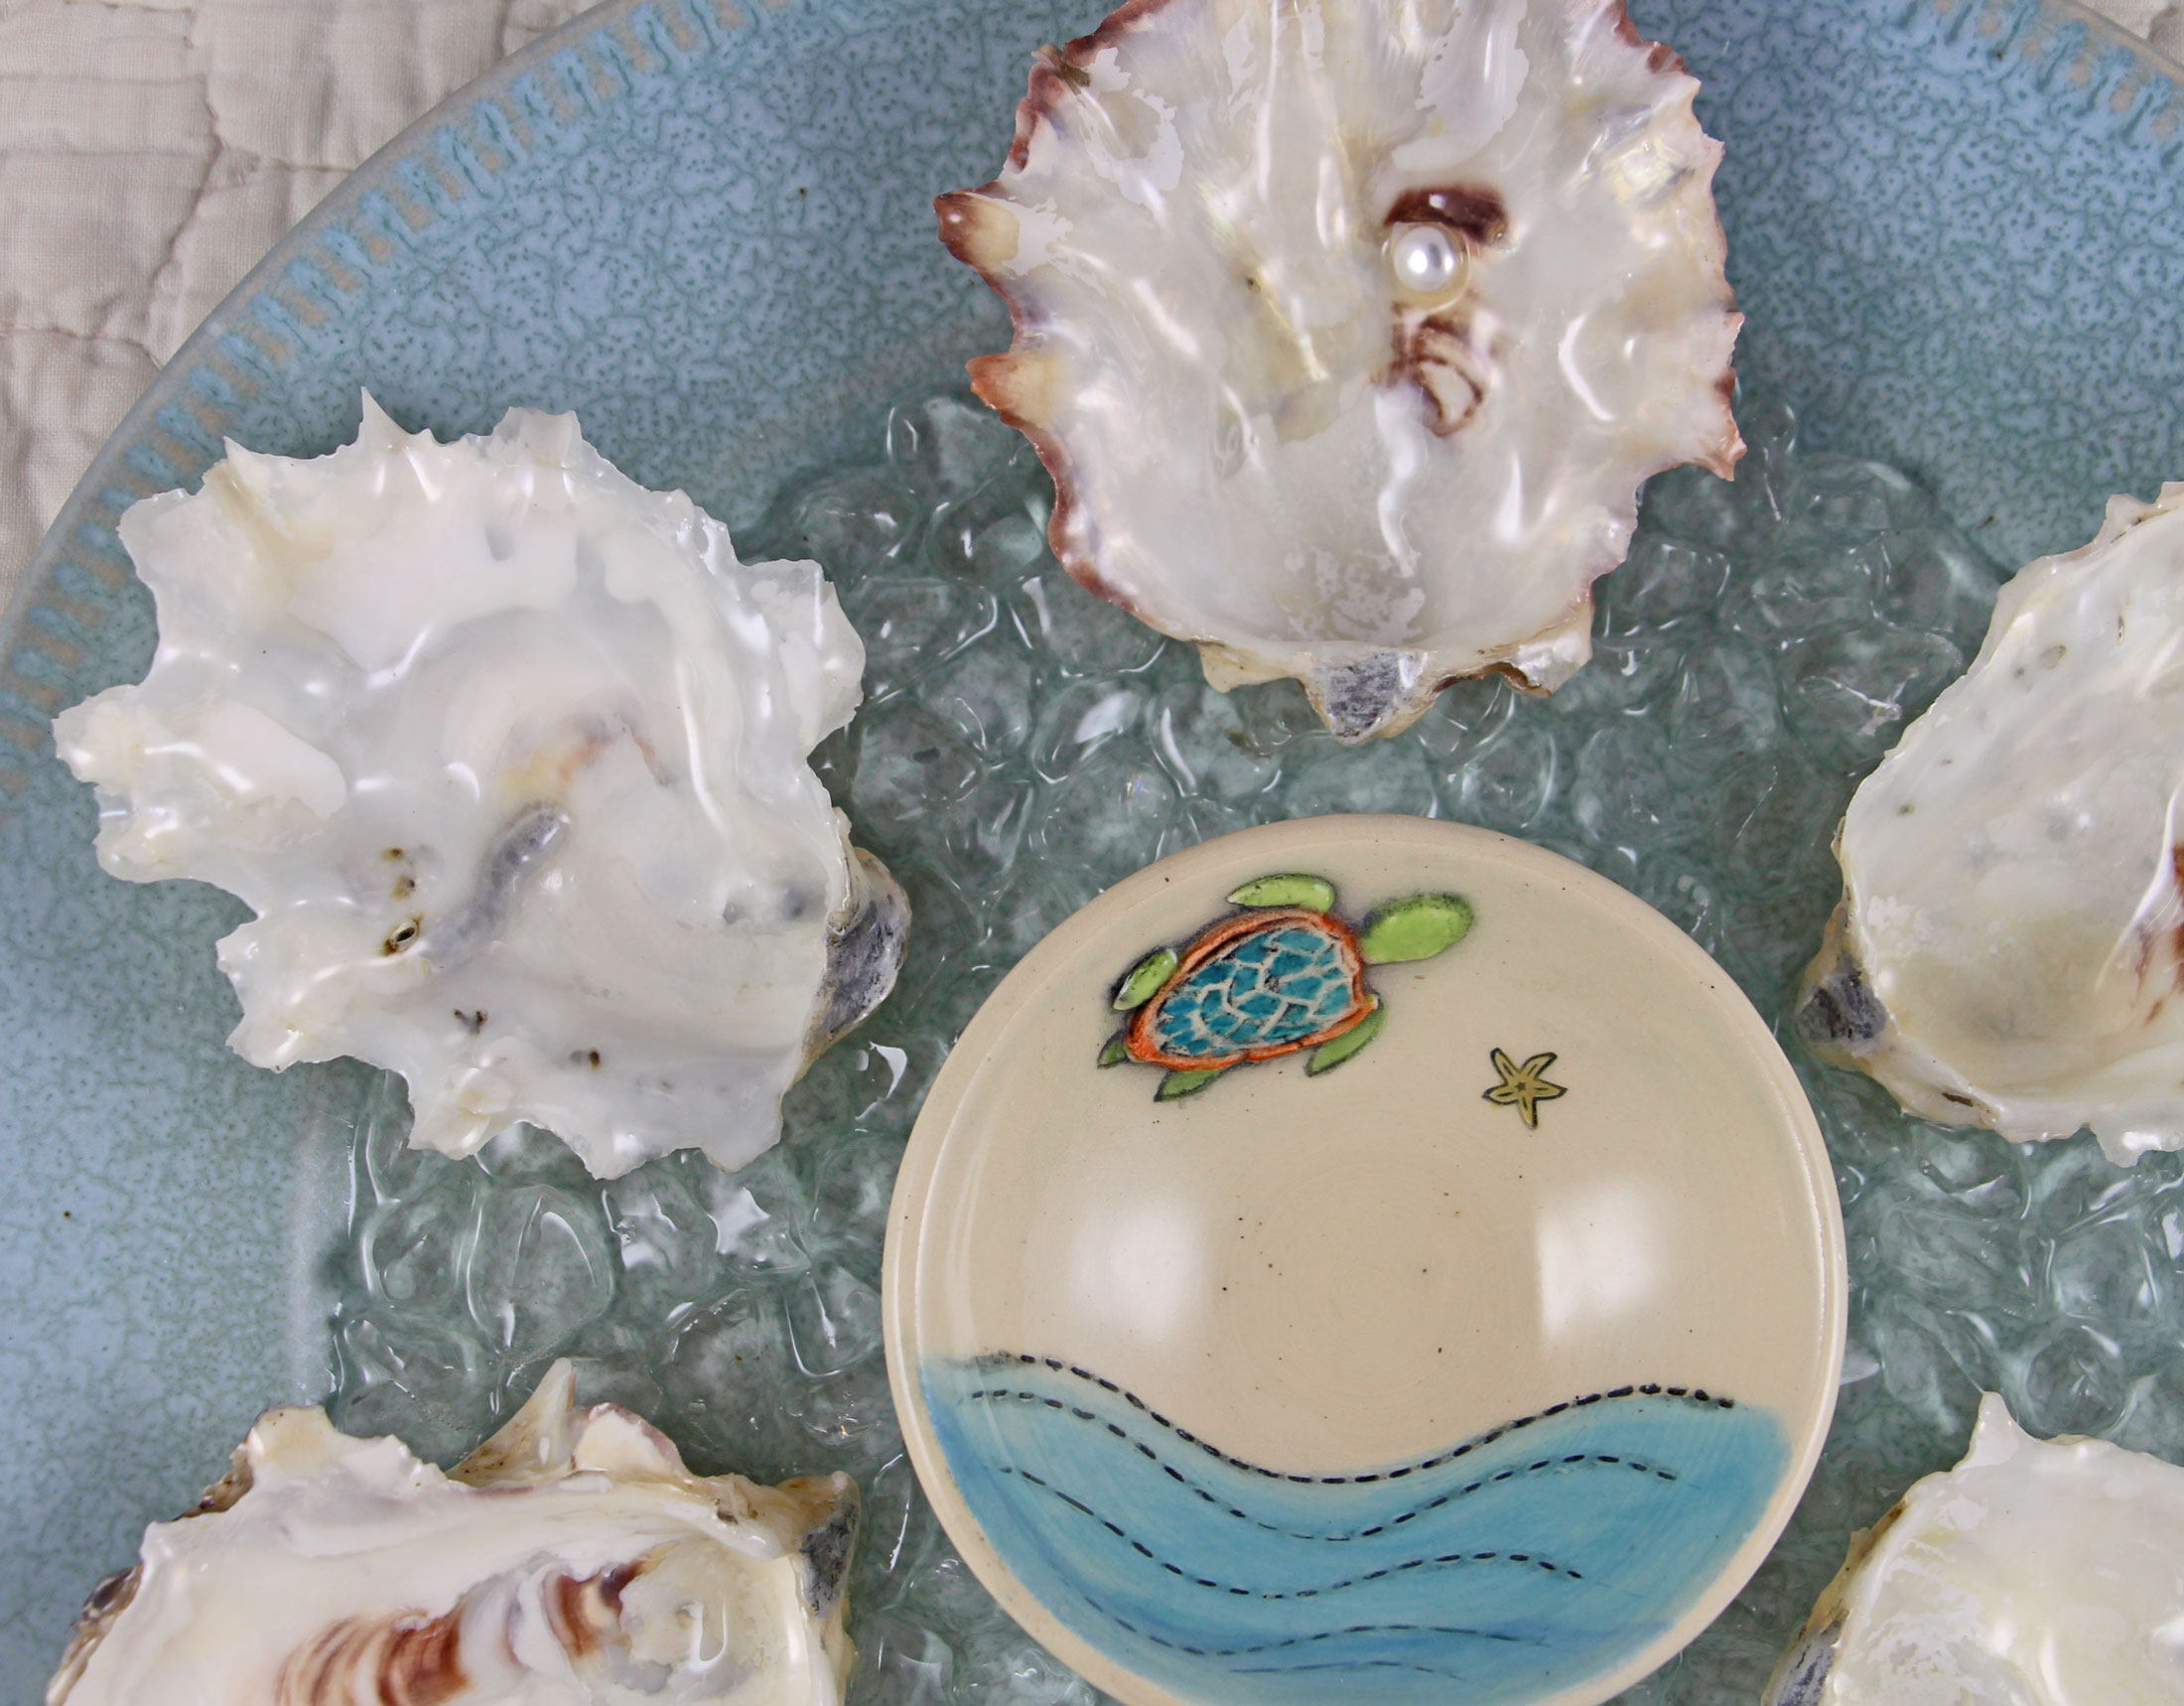 Collectible oyster plates and seashell clocks.